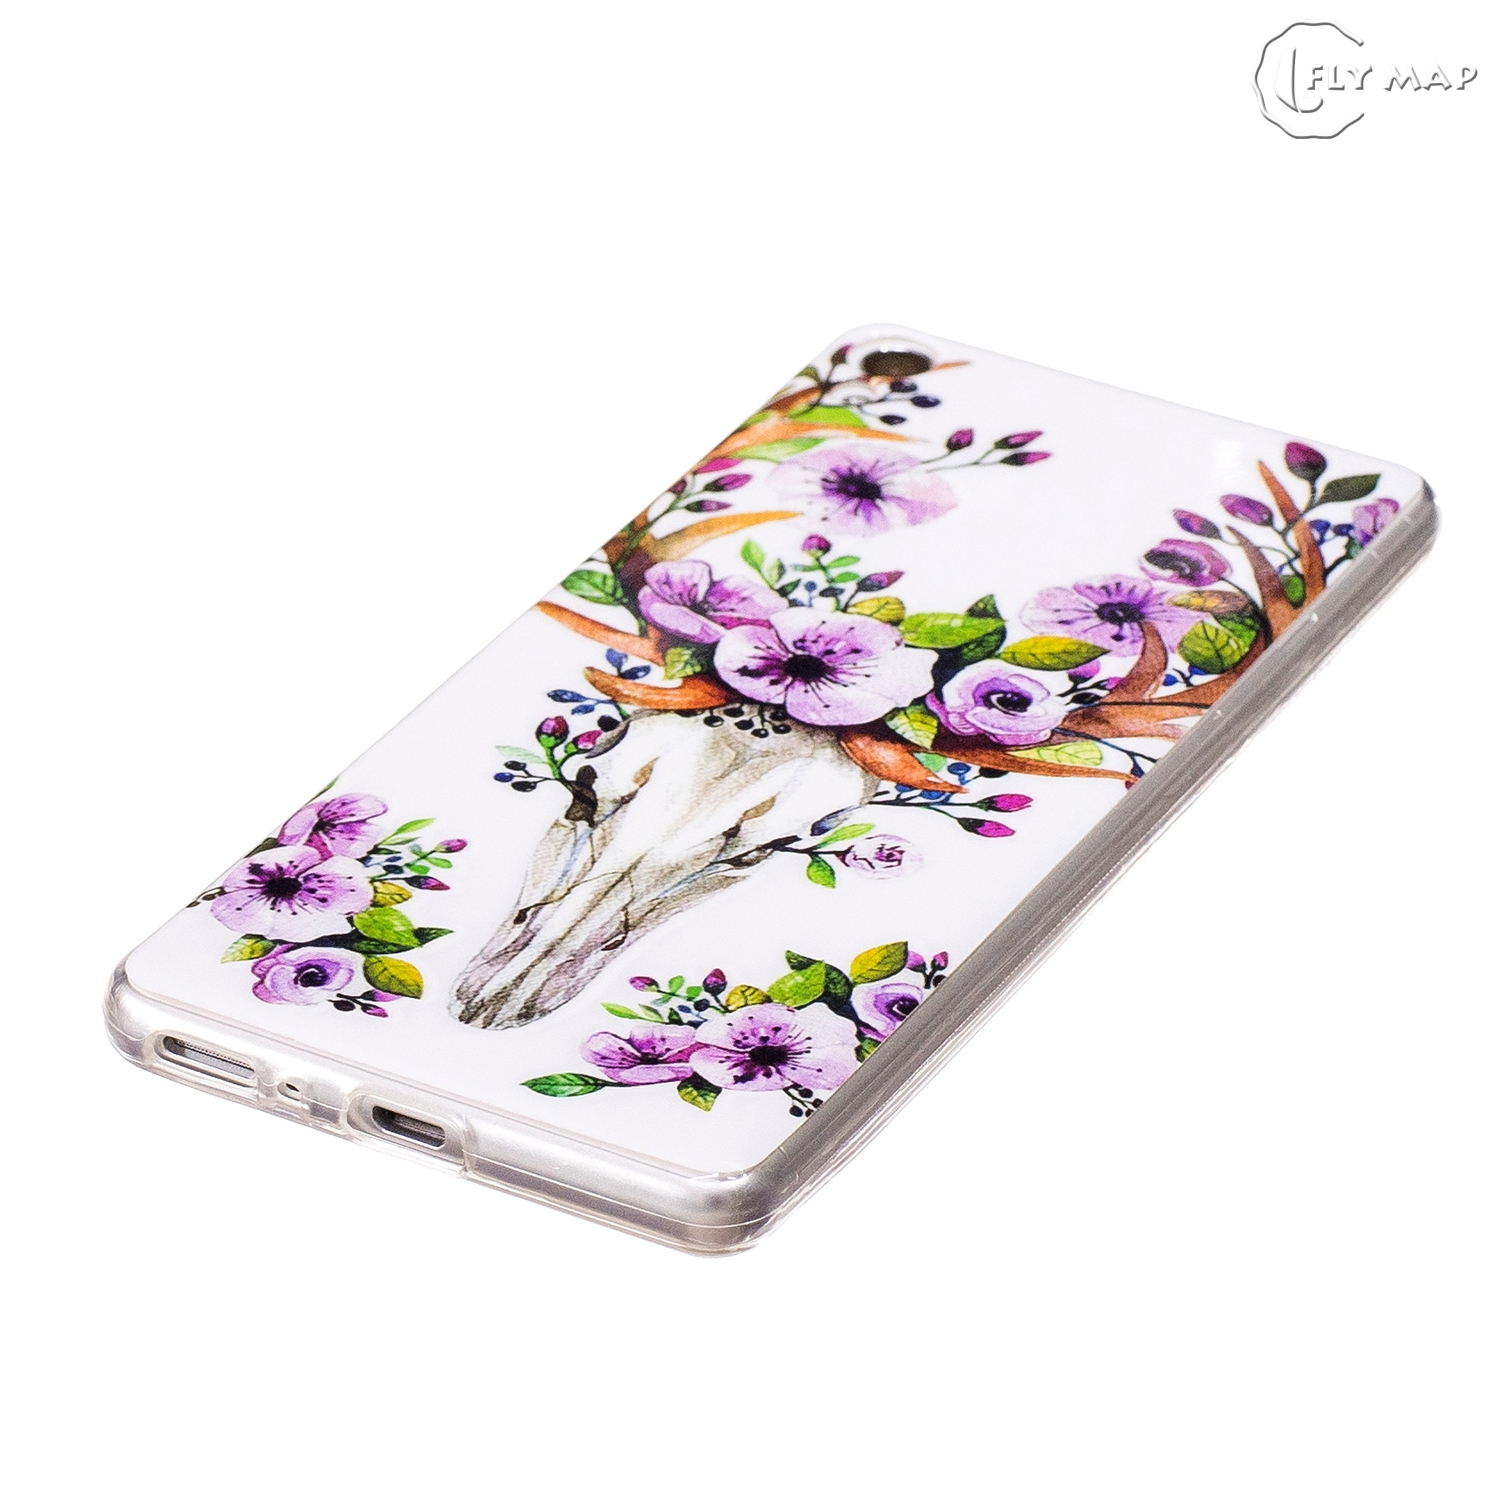 Luminous TPU Case for Huawei P10 VTR-L29 VTR-L09 VTR-AL00 Soft Silicone Floral Protect Cover for Huawei P 10 VTR L29 L09 Case